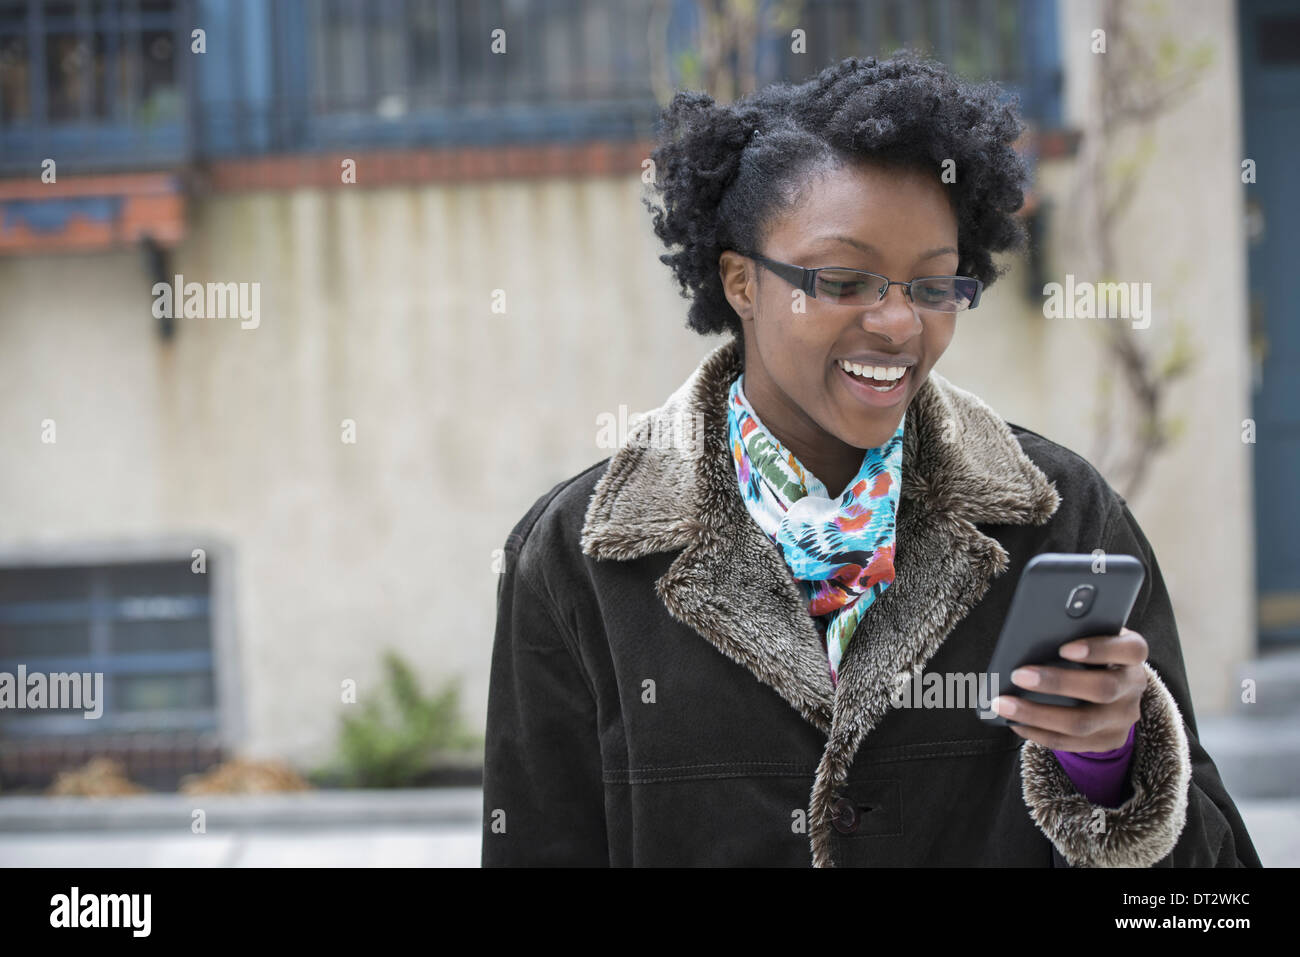 A woman wearing glasses looking at her smart phone keeping in touch while on the go - Stock Image